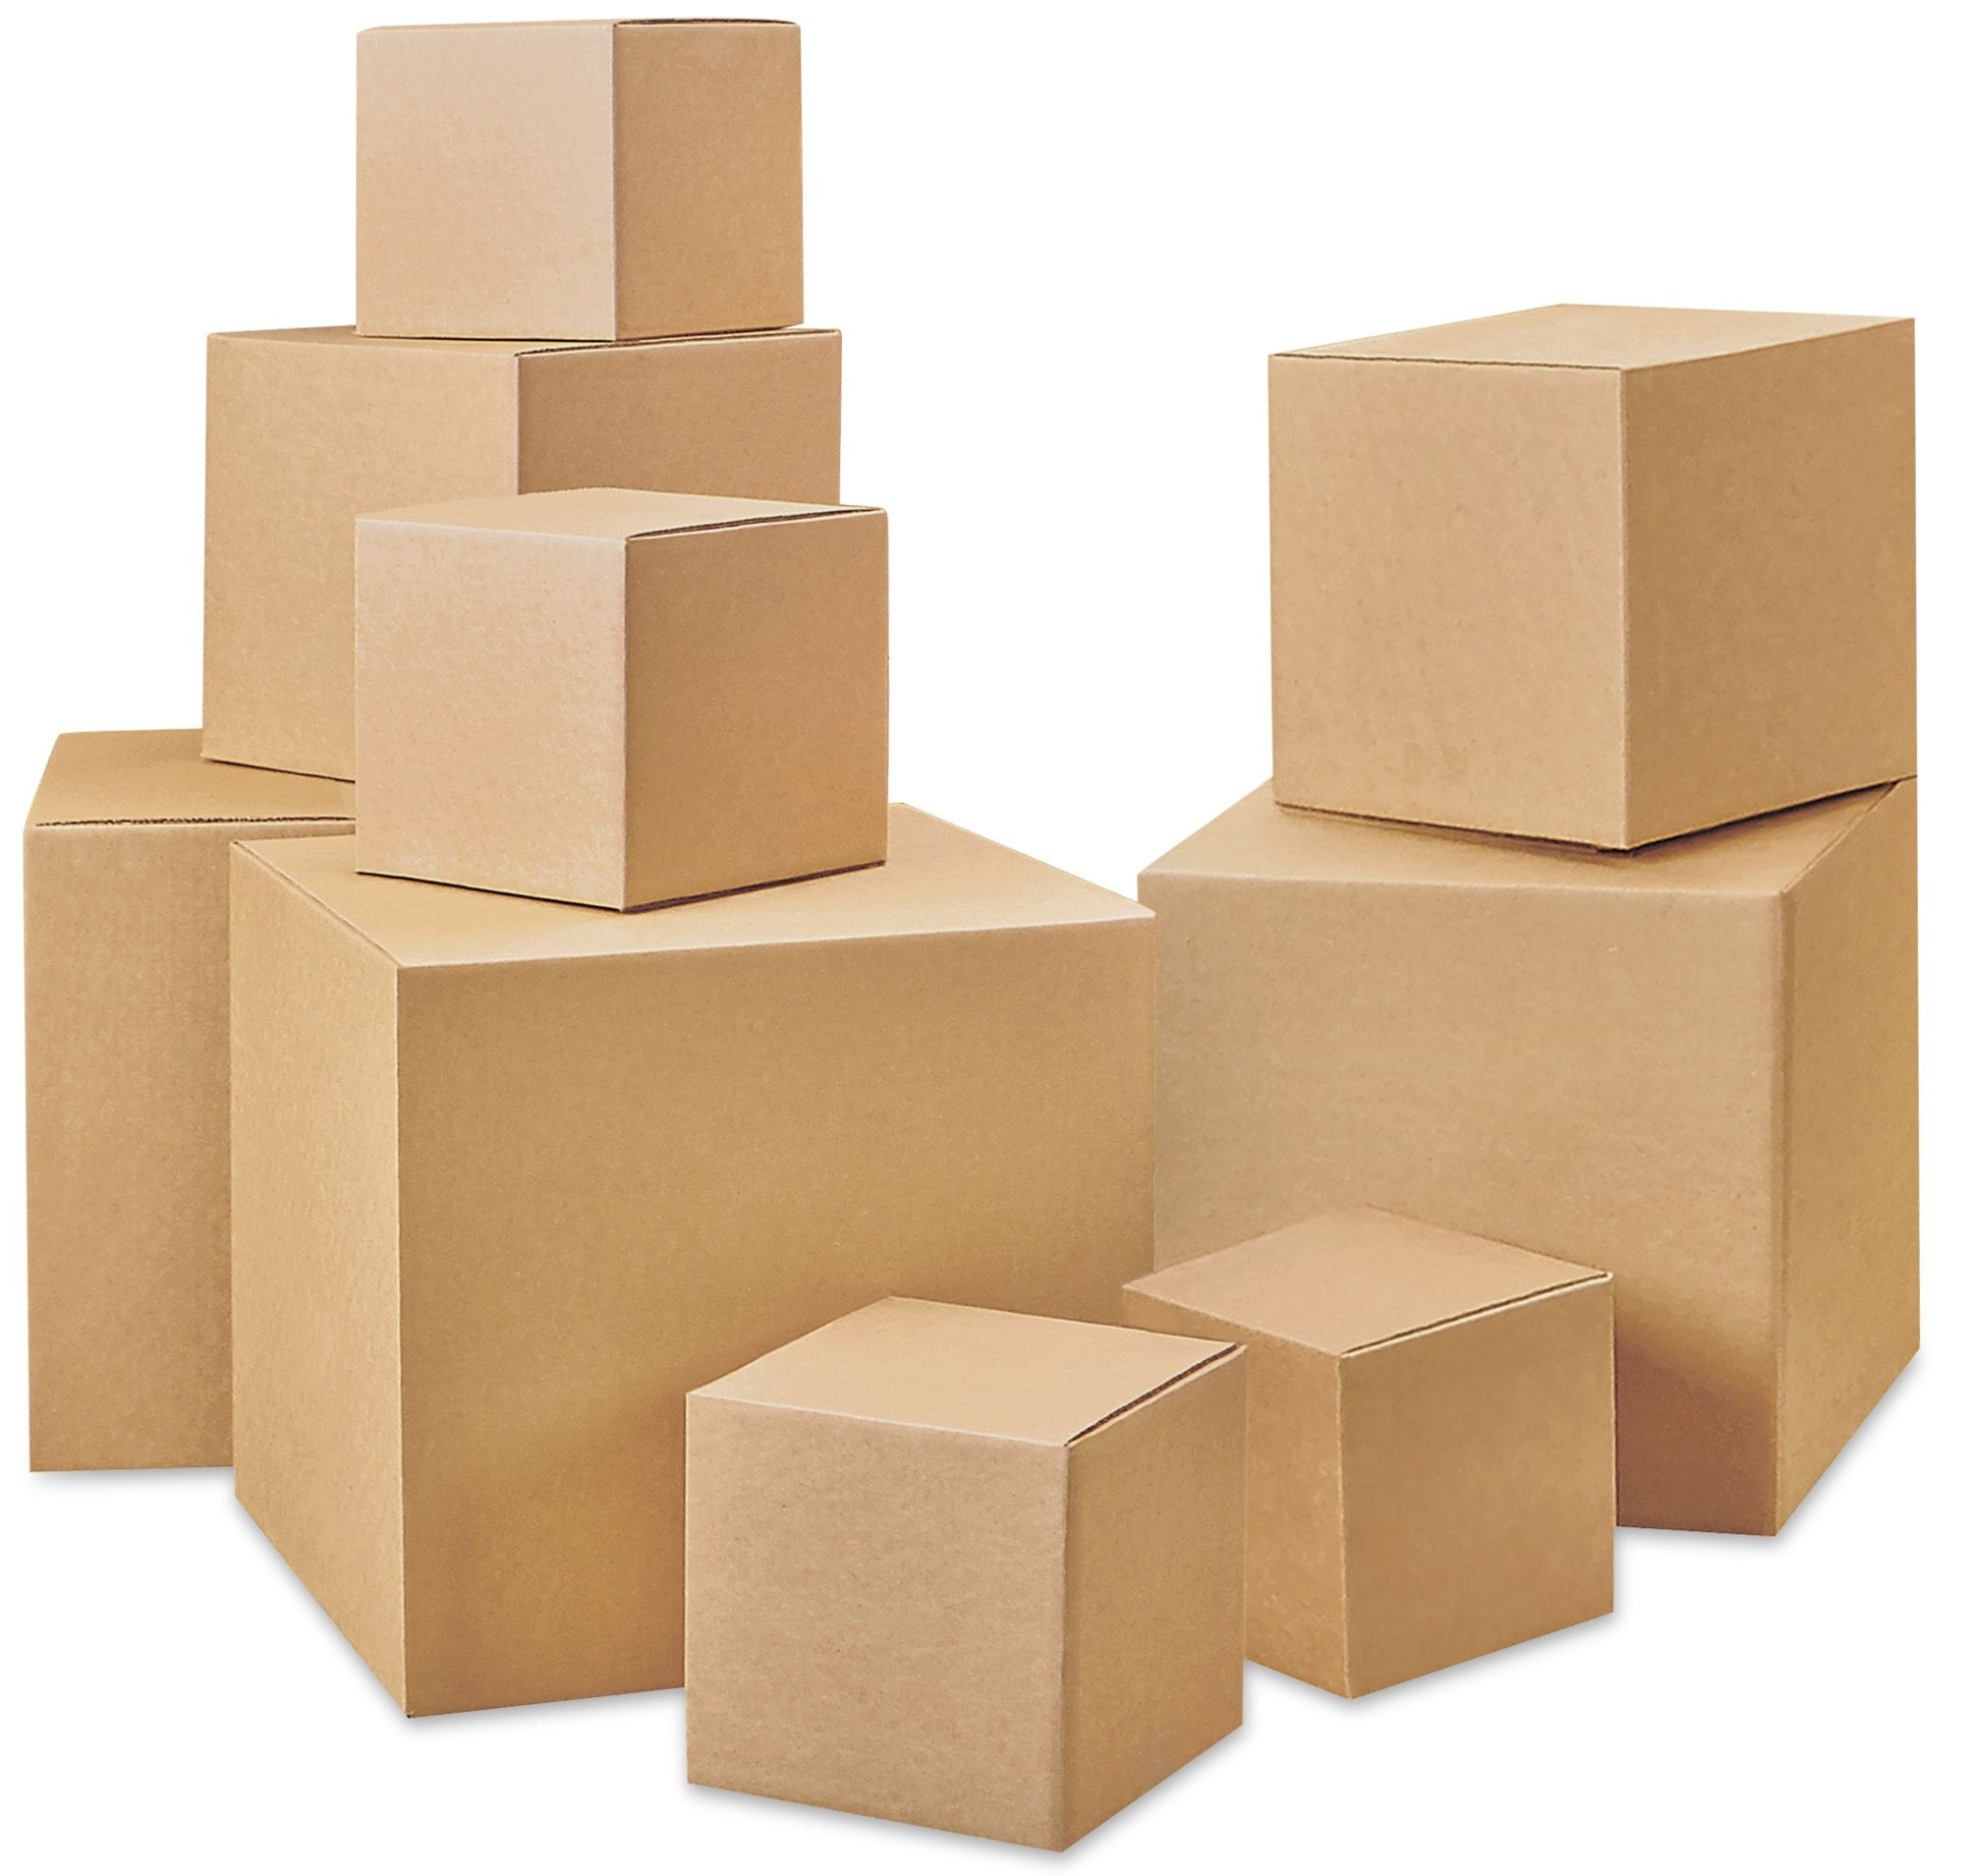 Cube Shipping Boxes in Stock - ULINE | Tinker Lab